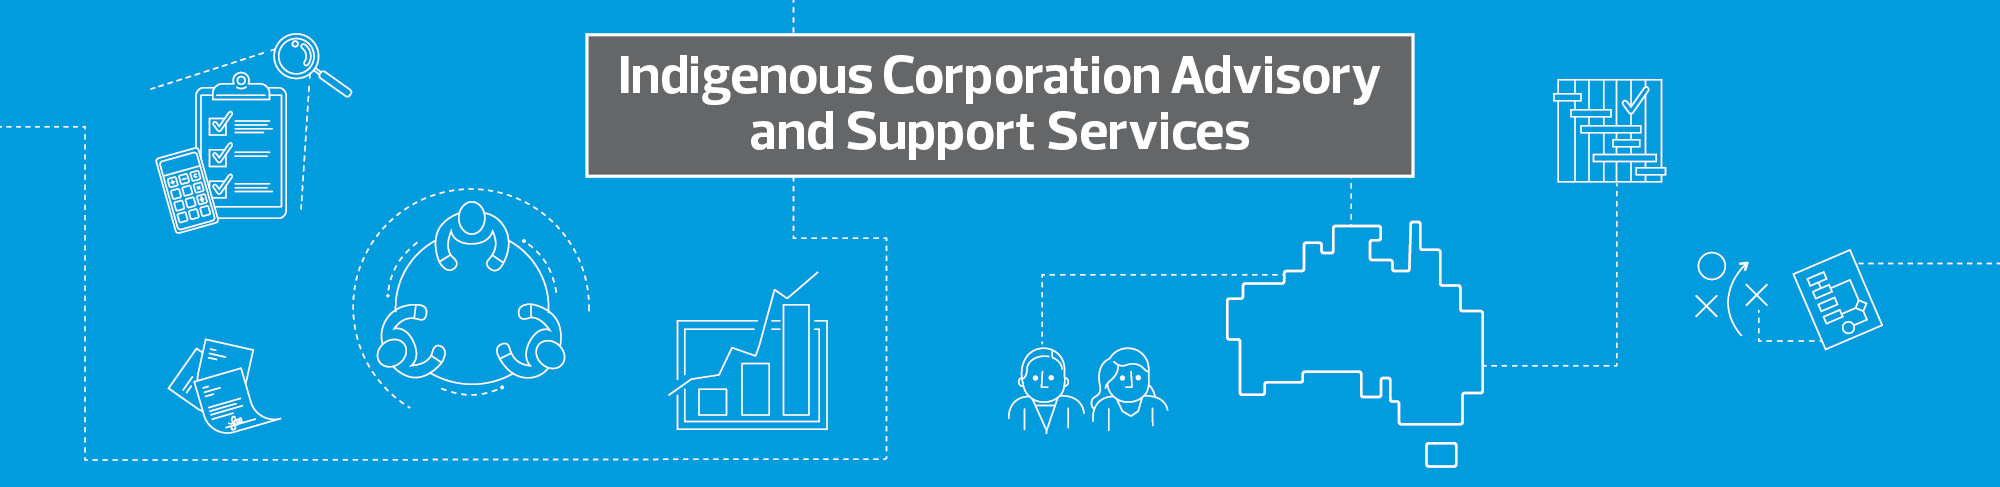 Indigenous Corporation Advisory and Support Services